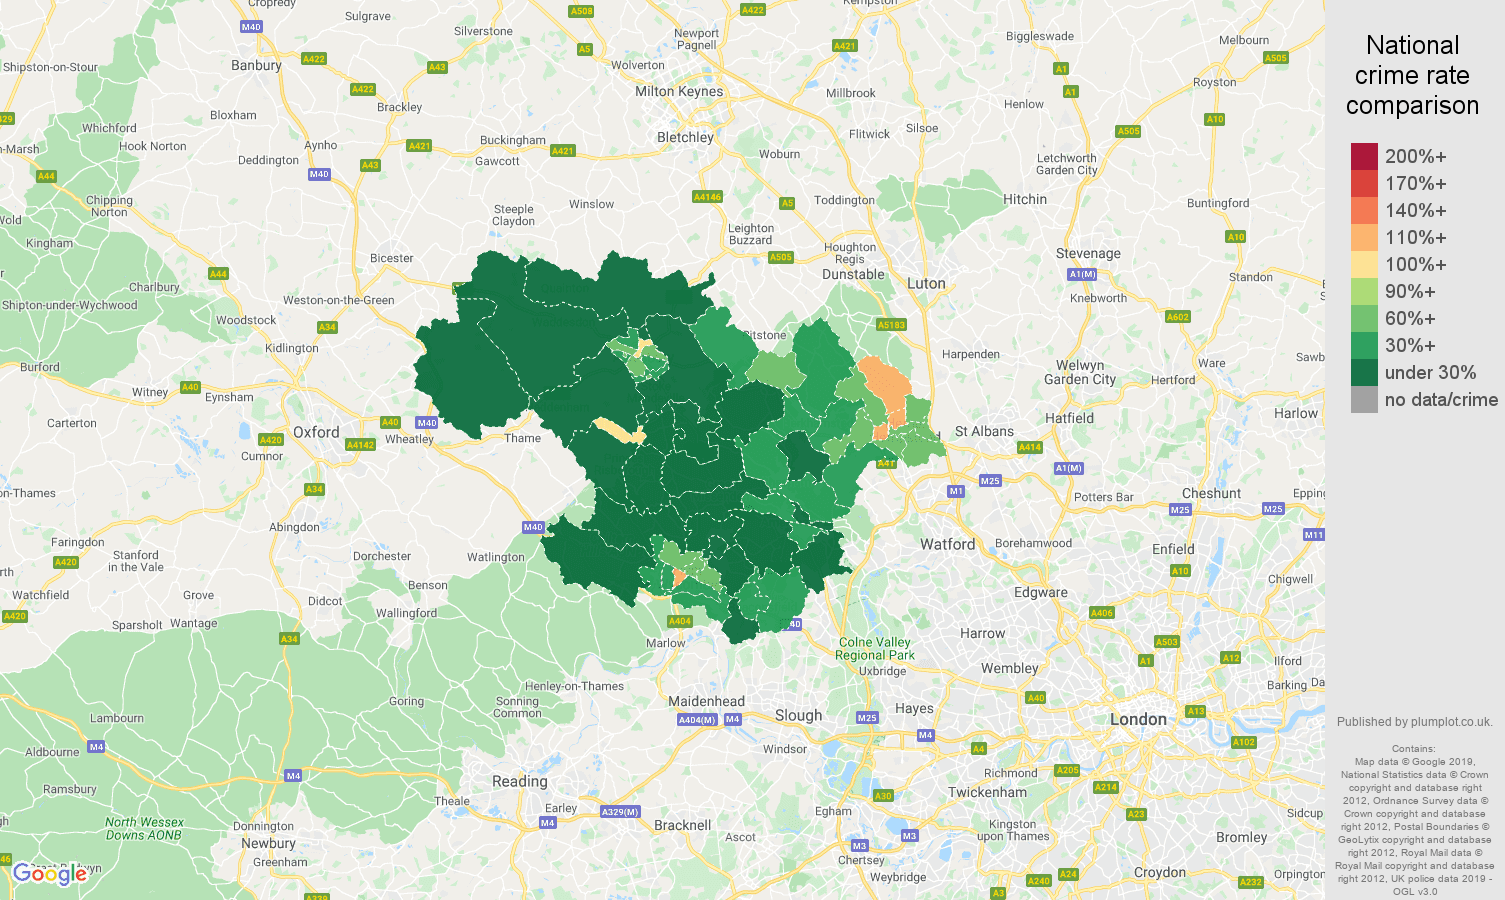 Hemel Hempstead public order crime rate comparison map